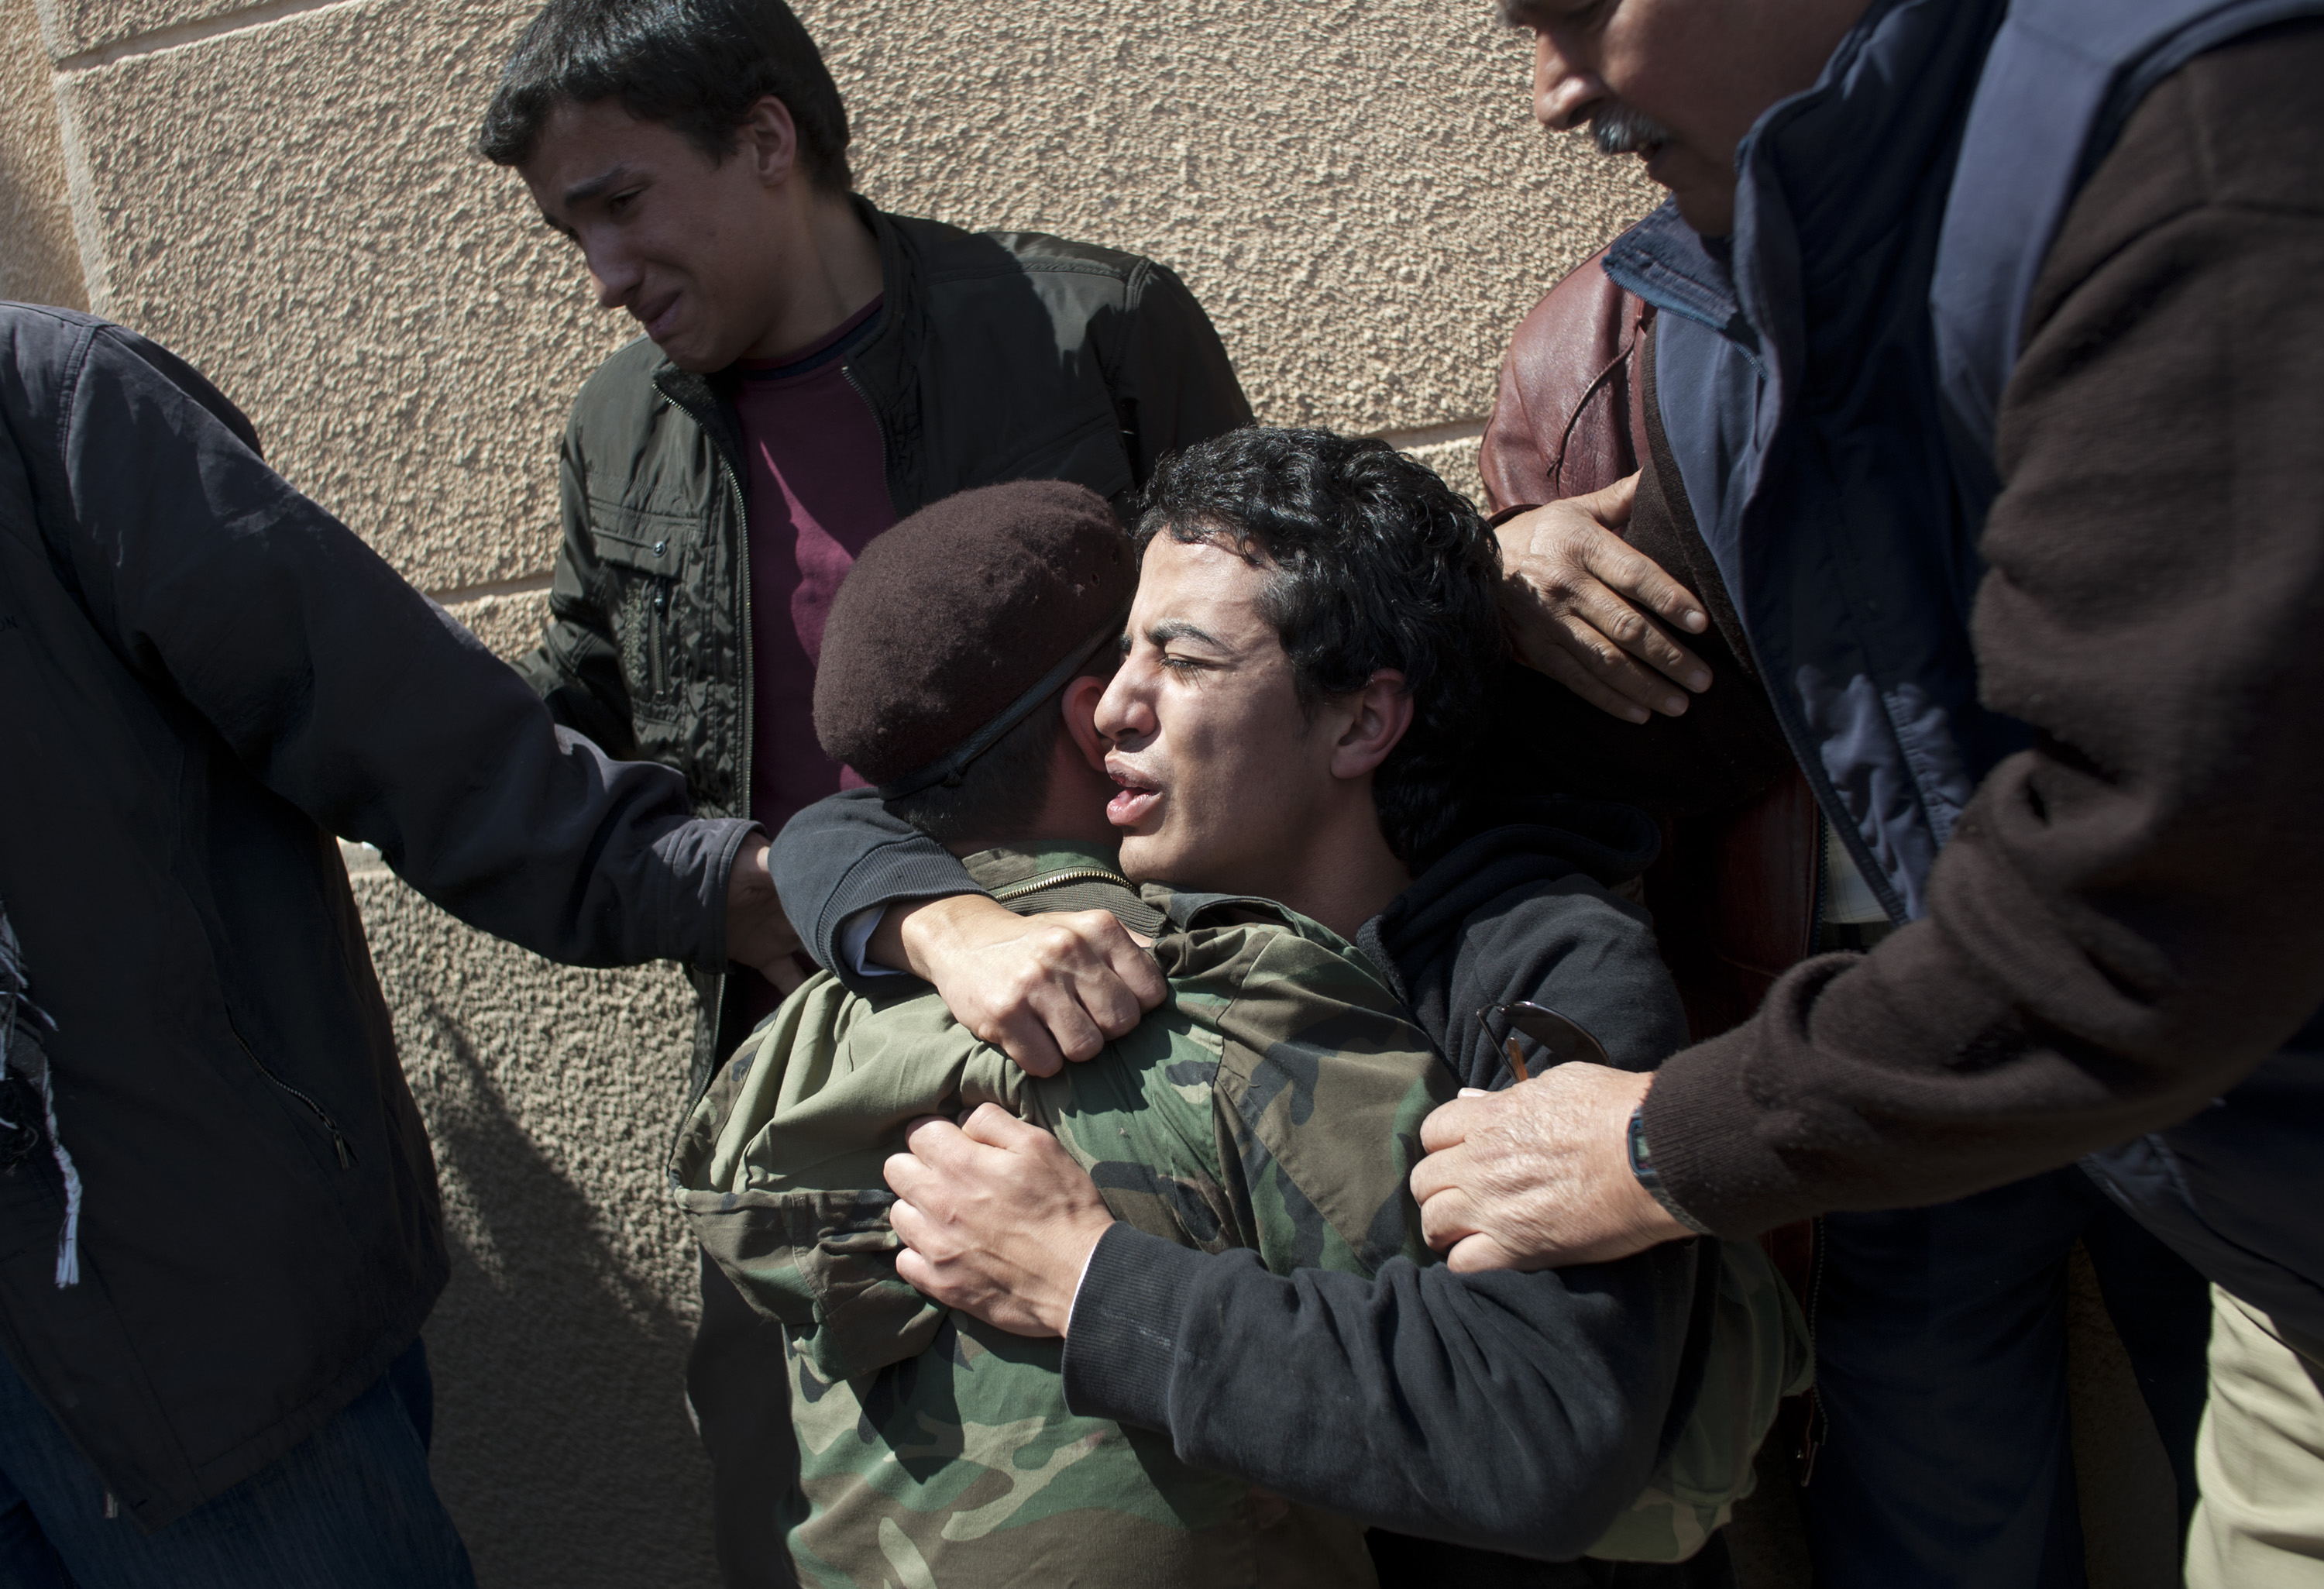 Relatives of Emad al Giryani weep over his body during his funeral the day after he was killed in fighting on the frontline in Ras Lanuf, in Eastern Libya, March 12, 2011. Dangerous confrontations have been going on between opposition forces and those loyal to Col. Qaddafi across Libya.